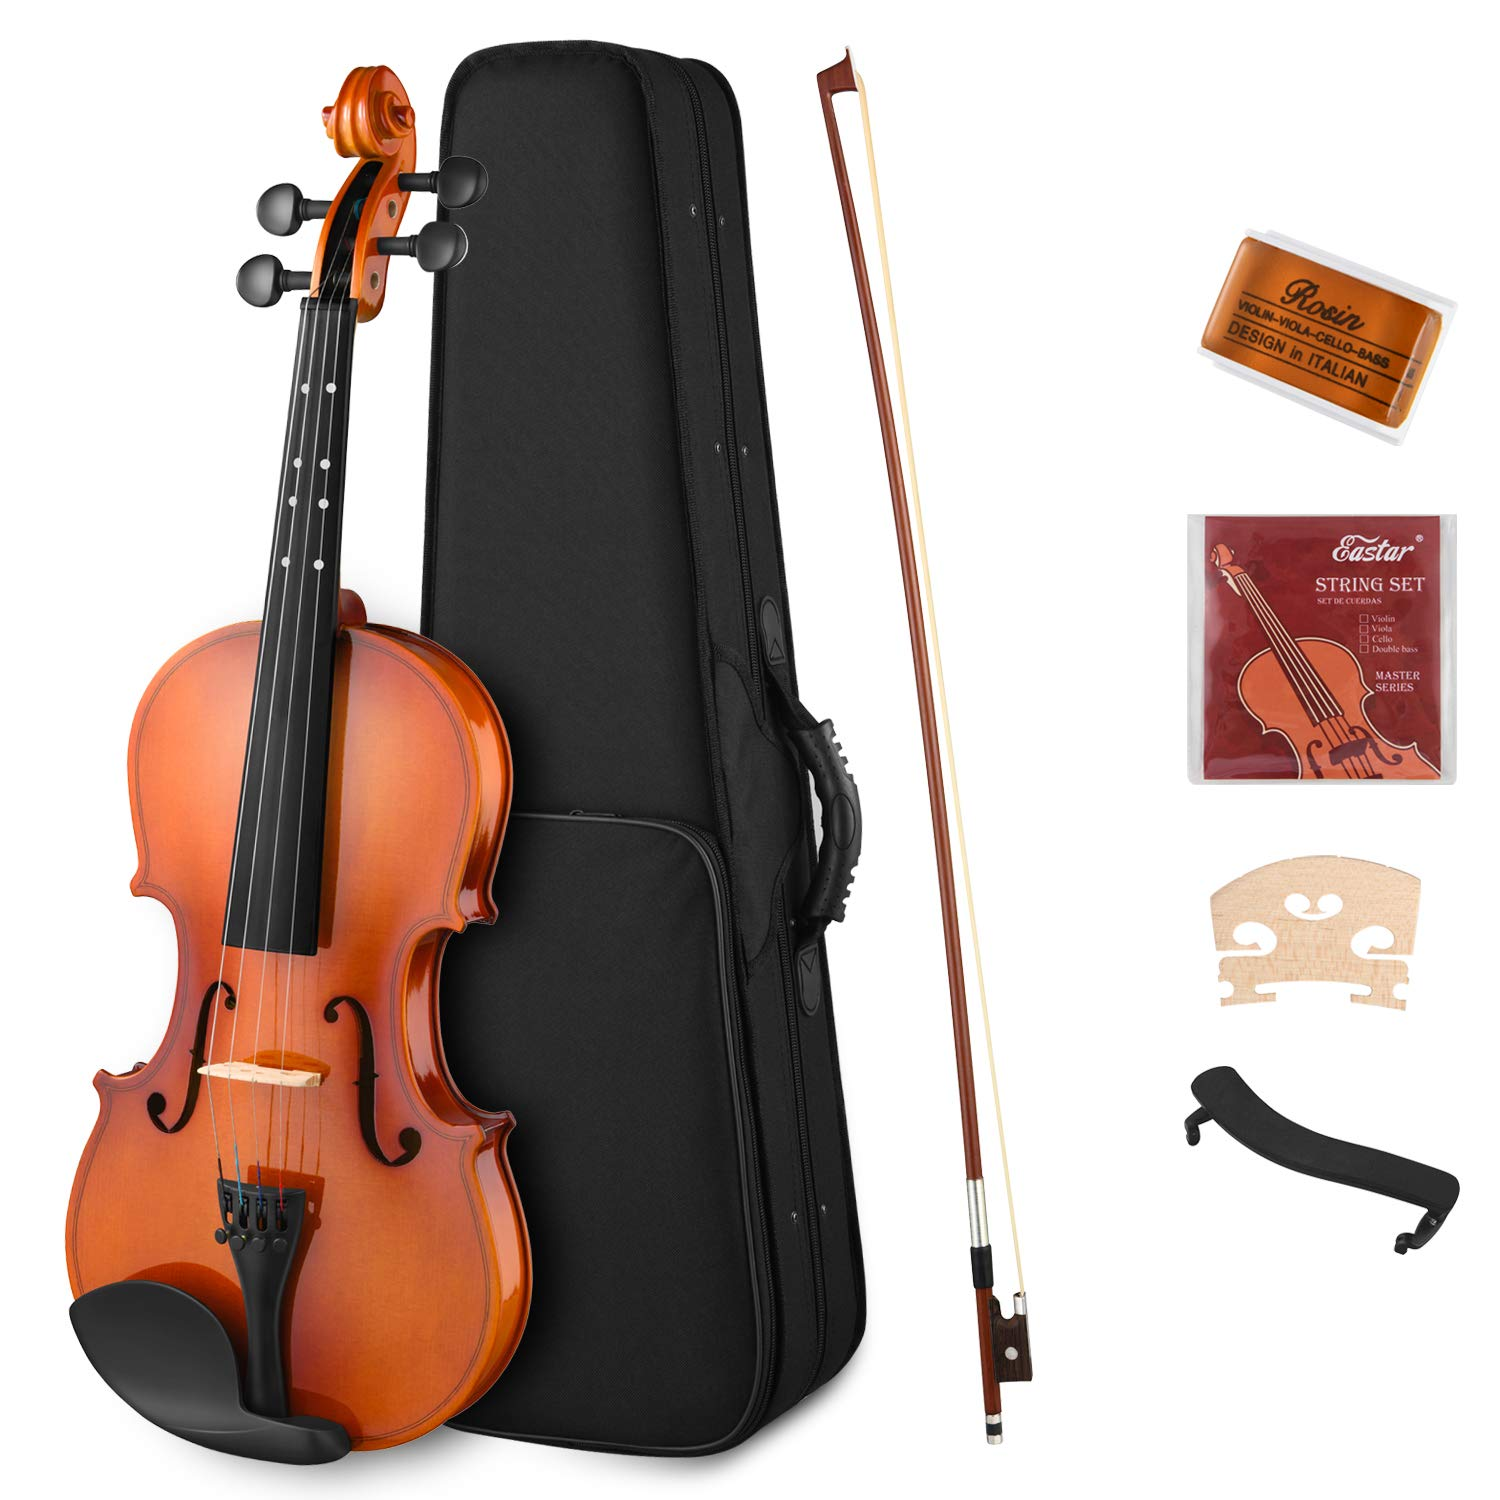 Eastar EVA-2 4/4 Violin Set (Imprinted Finger Guide on Fingerboard) Full Size Fiddle for Students Beginners Kids with Hard Case, Rosin, Shoulder Rest, Bow, and Extra Strings by Eastar